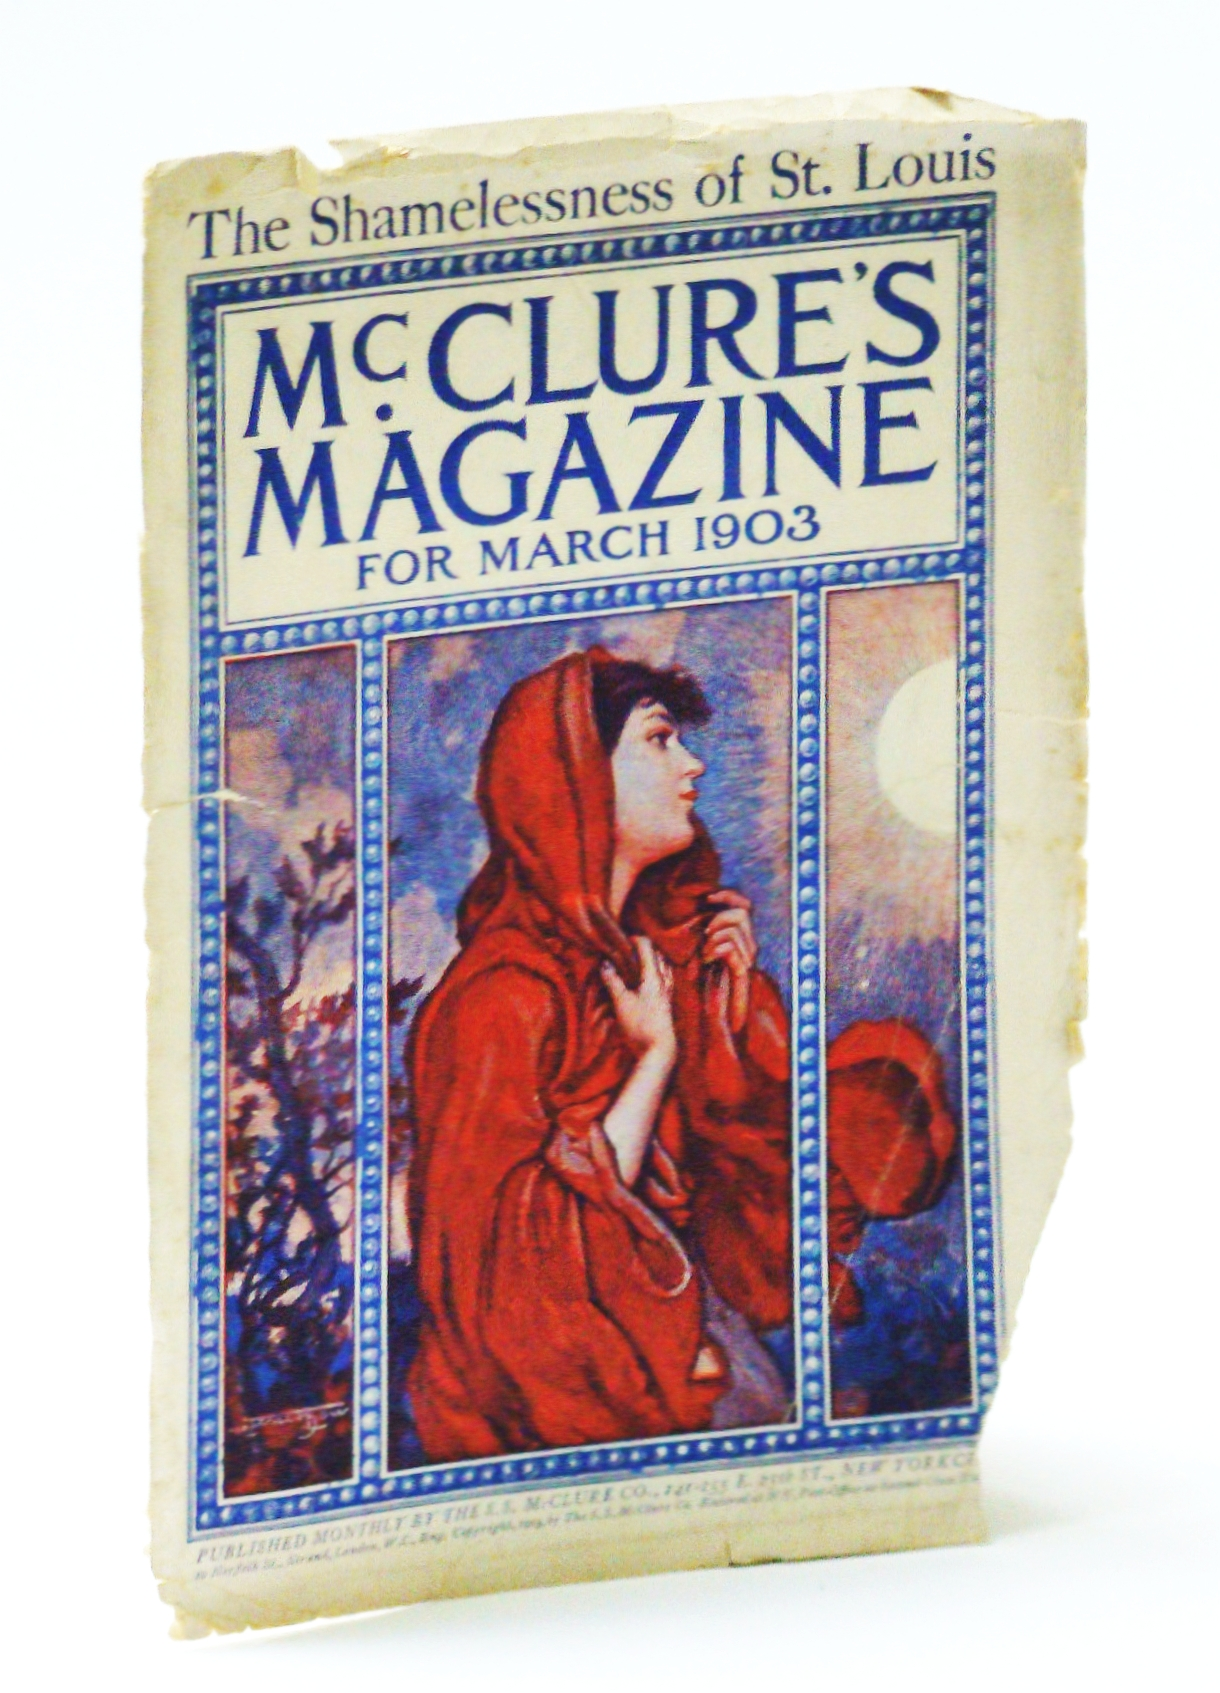 Image for McClure's Magazine, March 1903 - The Shamelessness of St. Louis (Front Cover Only)